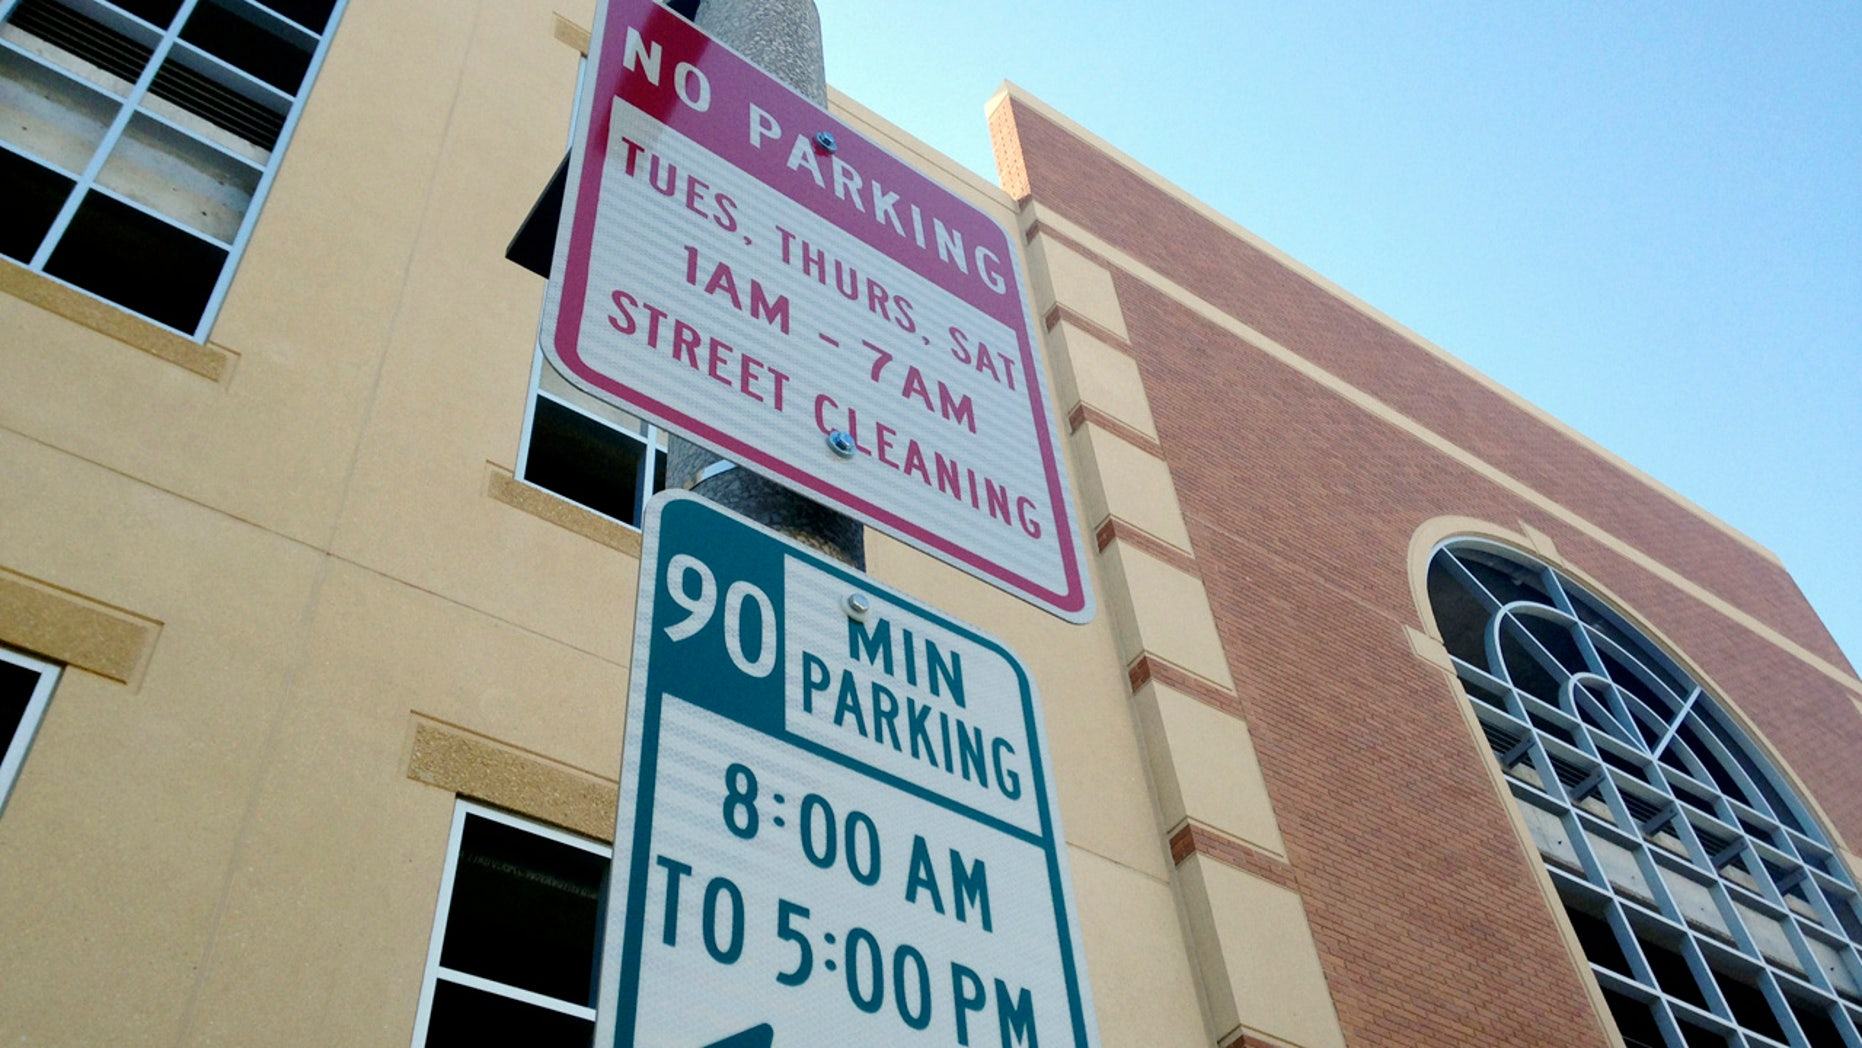 No Parking signs are displayed in downtown Bismarck, N.D., Tuesday, March 7, 2017. North Dakota is the only state that bans parking meters, but now Gov. Doug Burgum is quietly trying to end the nearly 70-year ban in hopes of revitalizing downtowns.